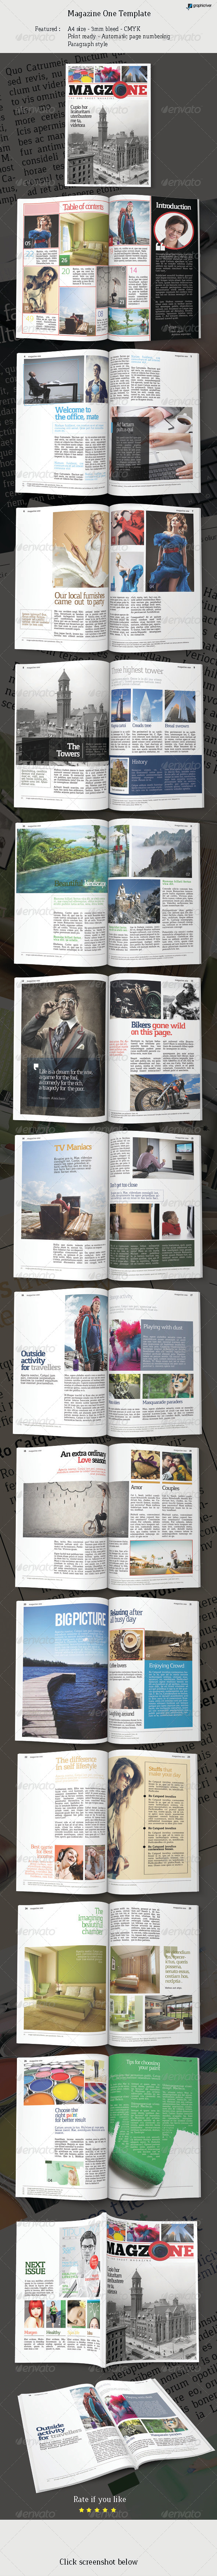 Magazine One Template - Magazines Print Templates